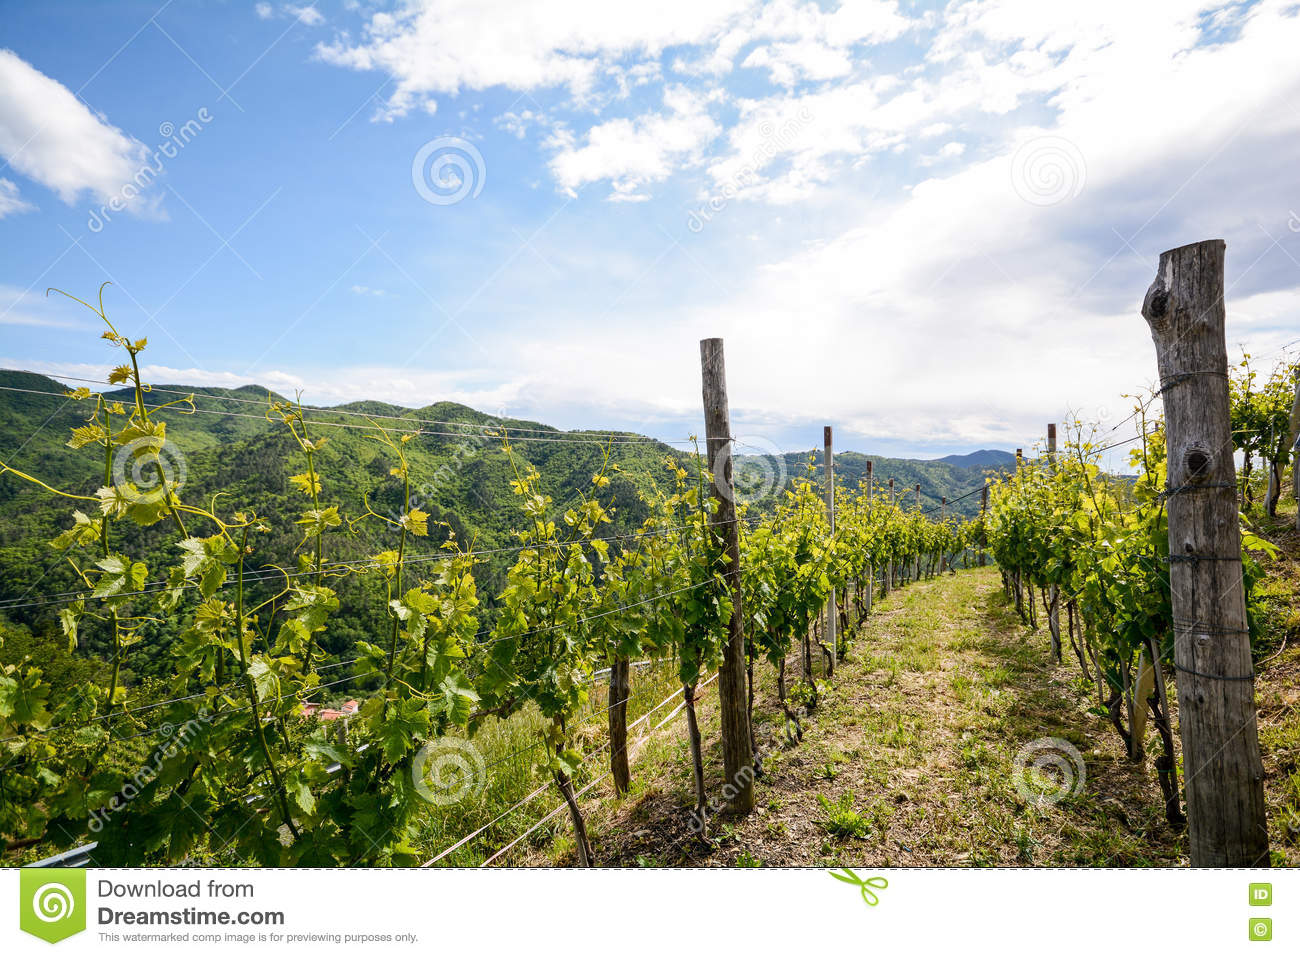 Hilly vineyards in early summer in Italy